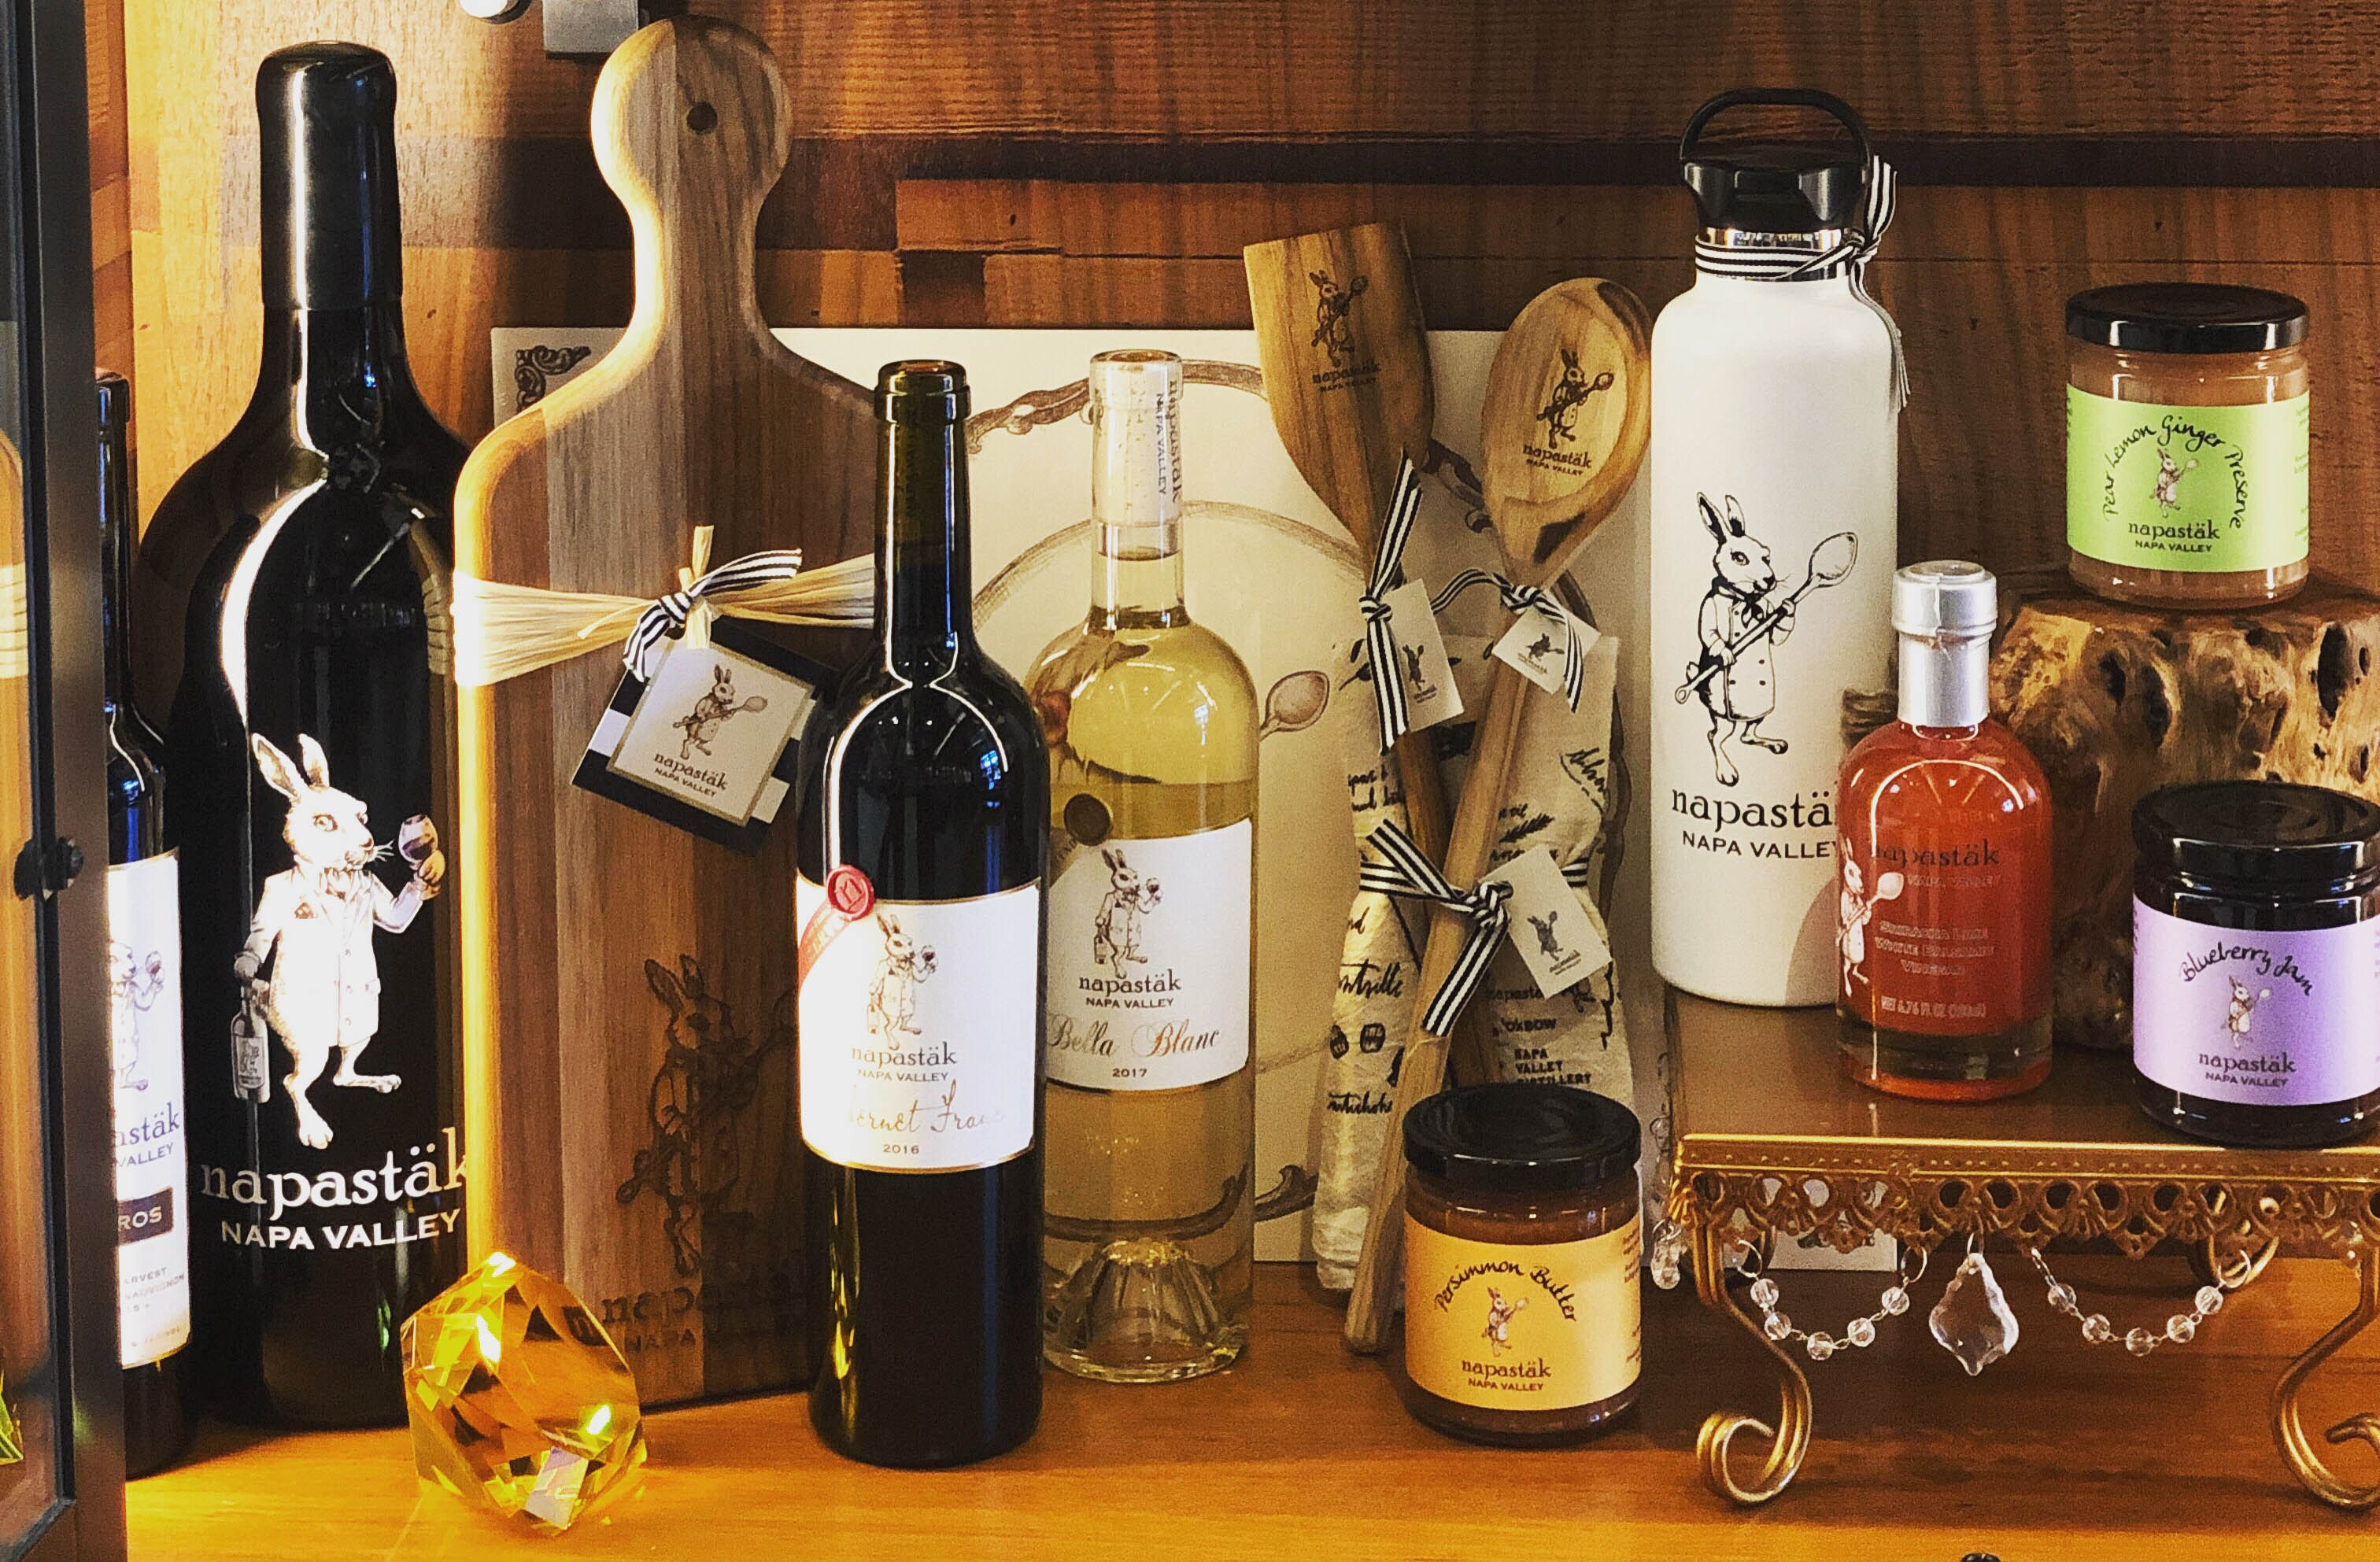 One of the best places to find an array of food- and wine-related Napa Valley souvenirs is at Napastäk, now with its own brick-and-mortar boutique.